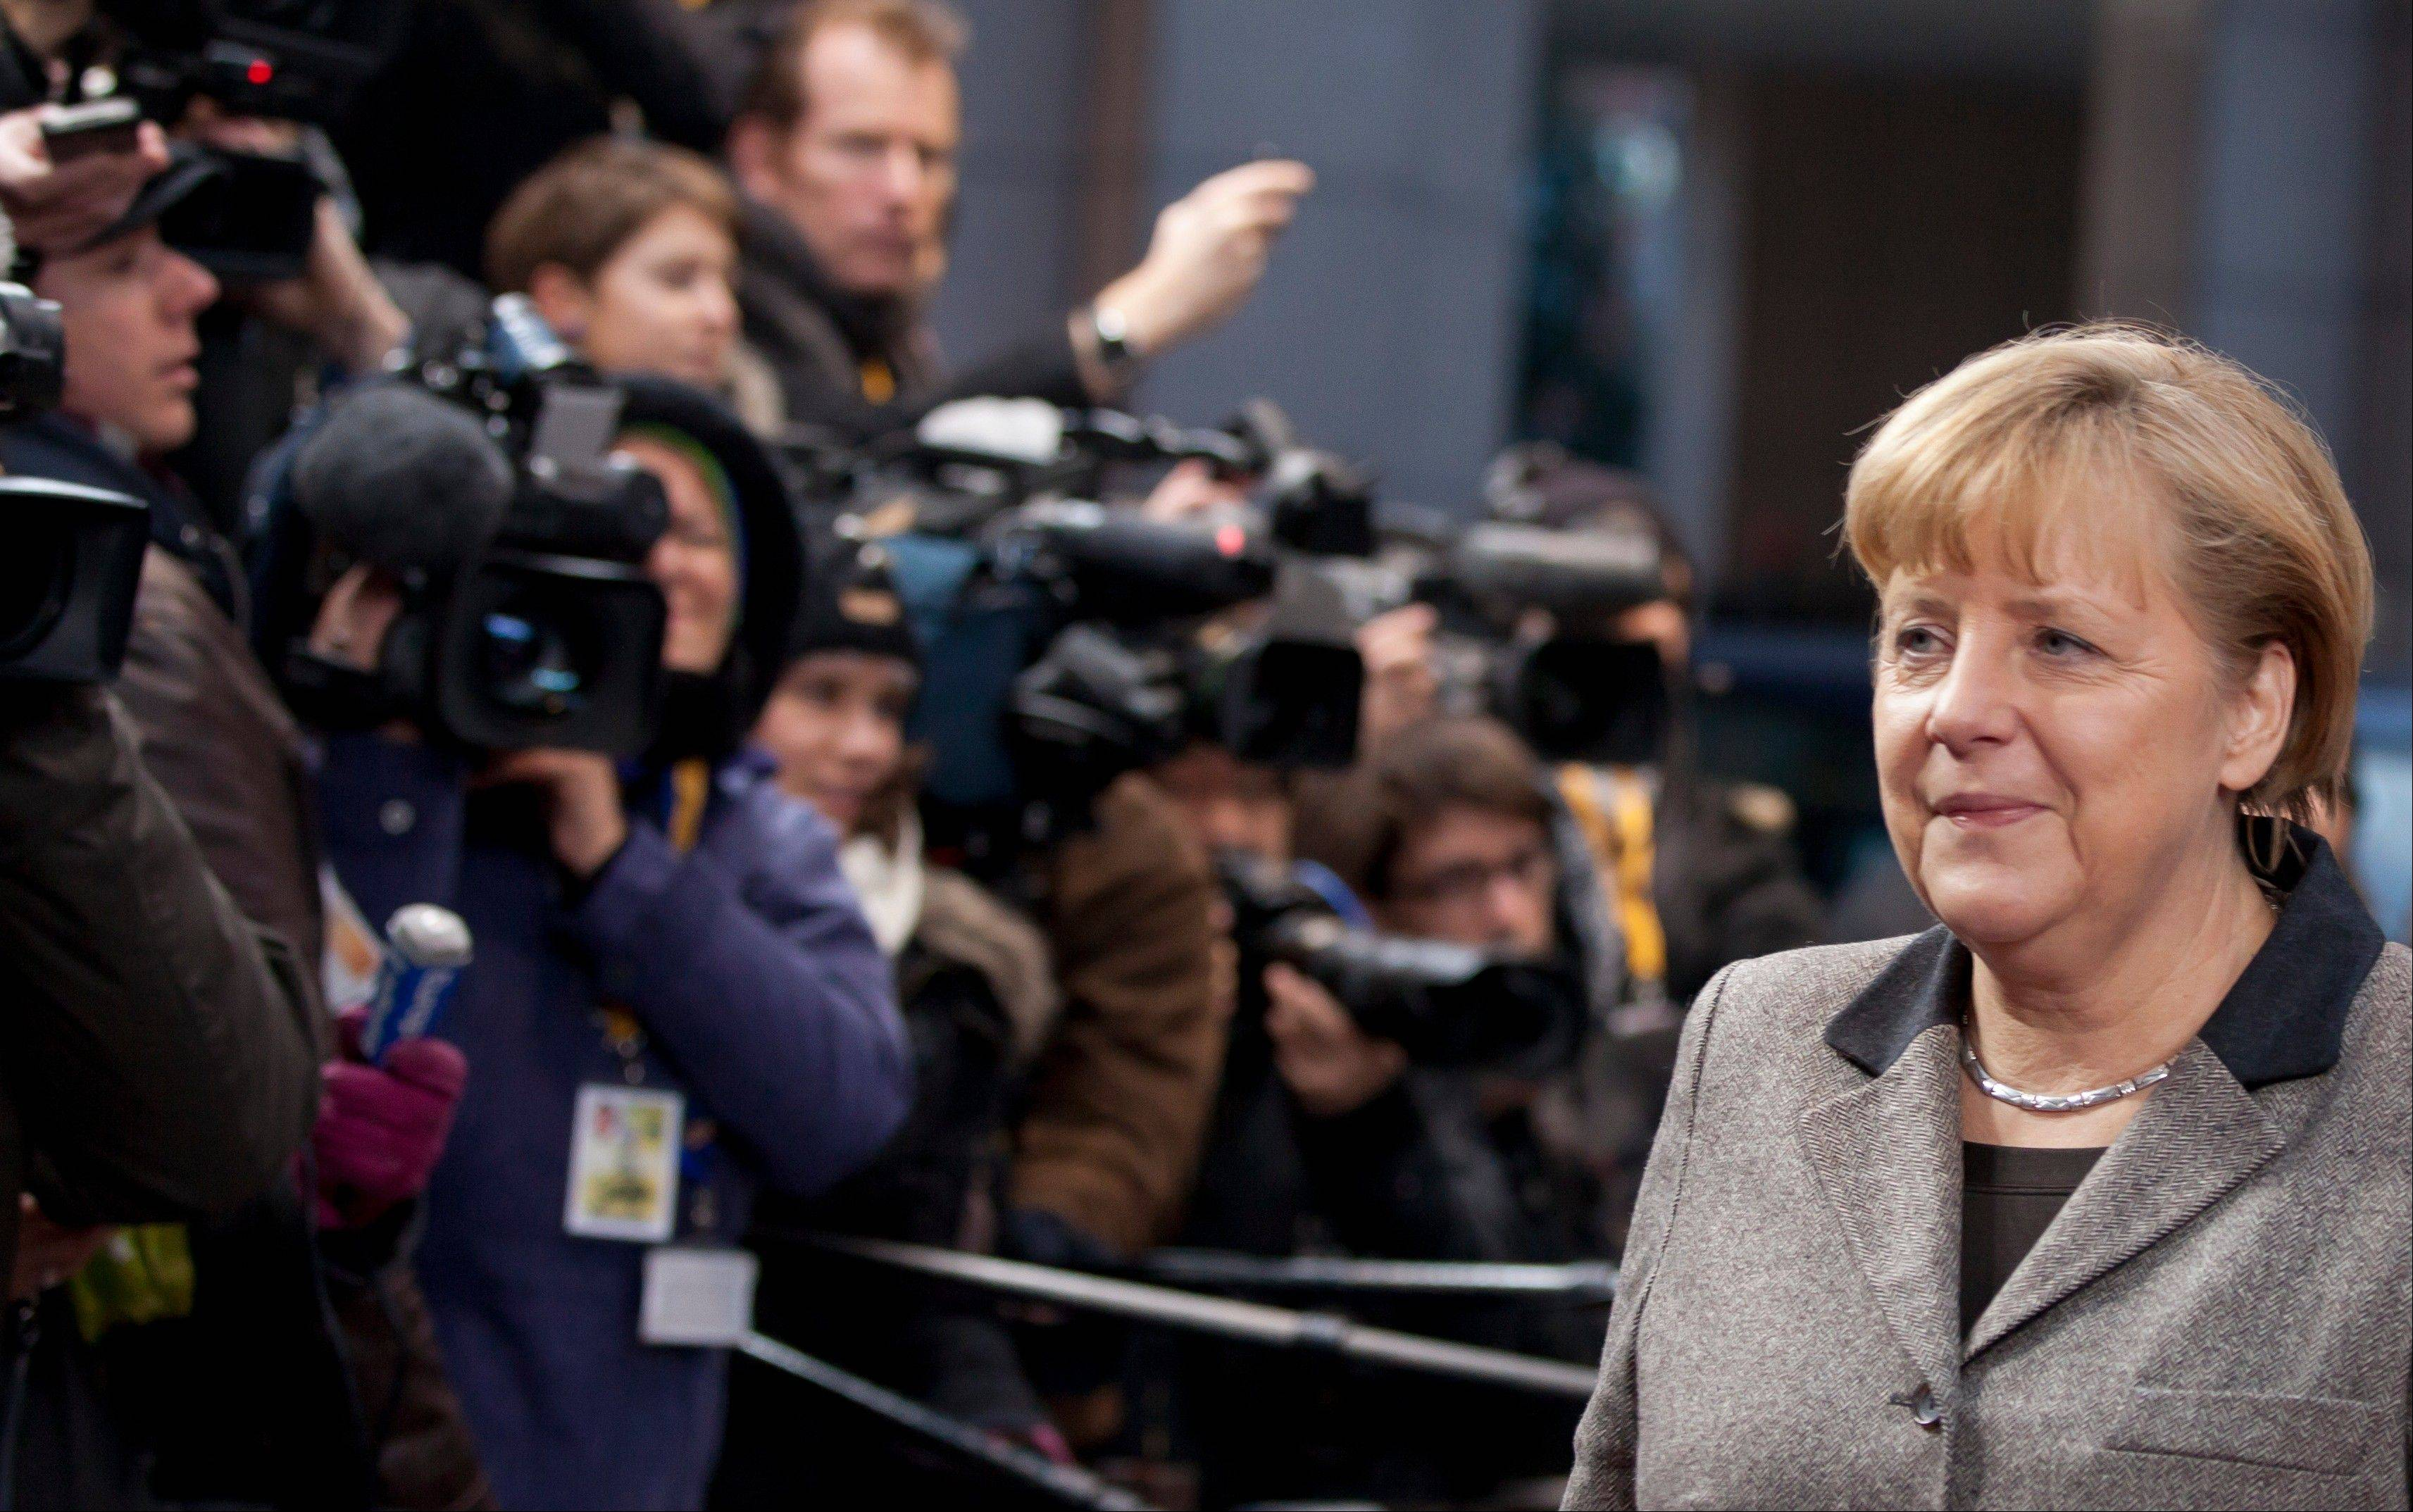 German Chancellor Angela Merkel arrives for an EU summit in Brussels Thursday. Member nations agreed on the foundation of a fully-fledged banking union and Greece�s euro partners approved billions of euros in bailout loans that will prevent the nation from going bankrupt.